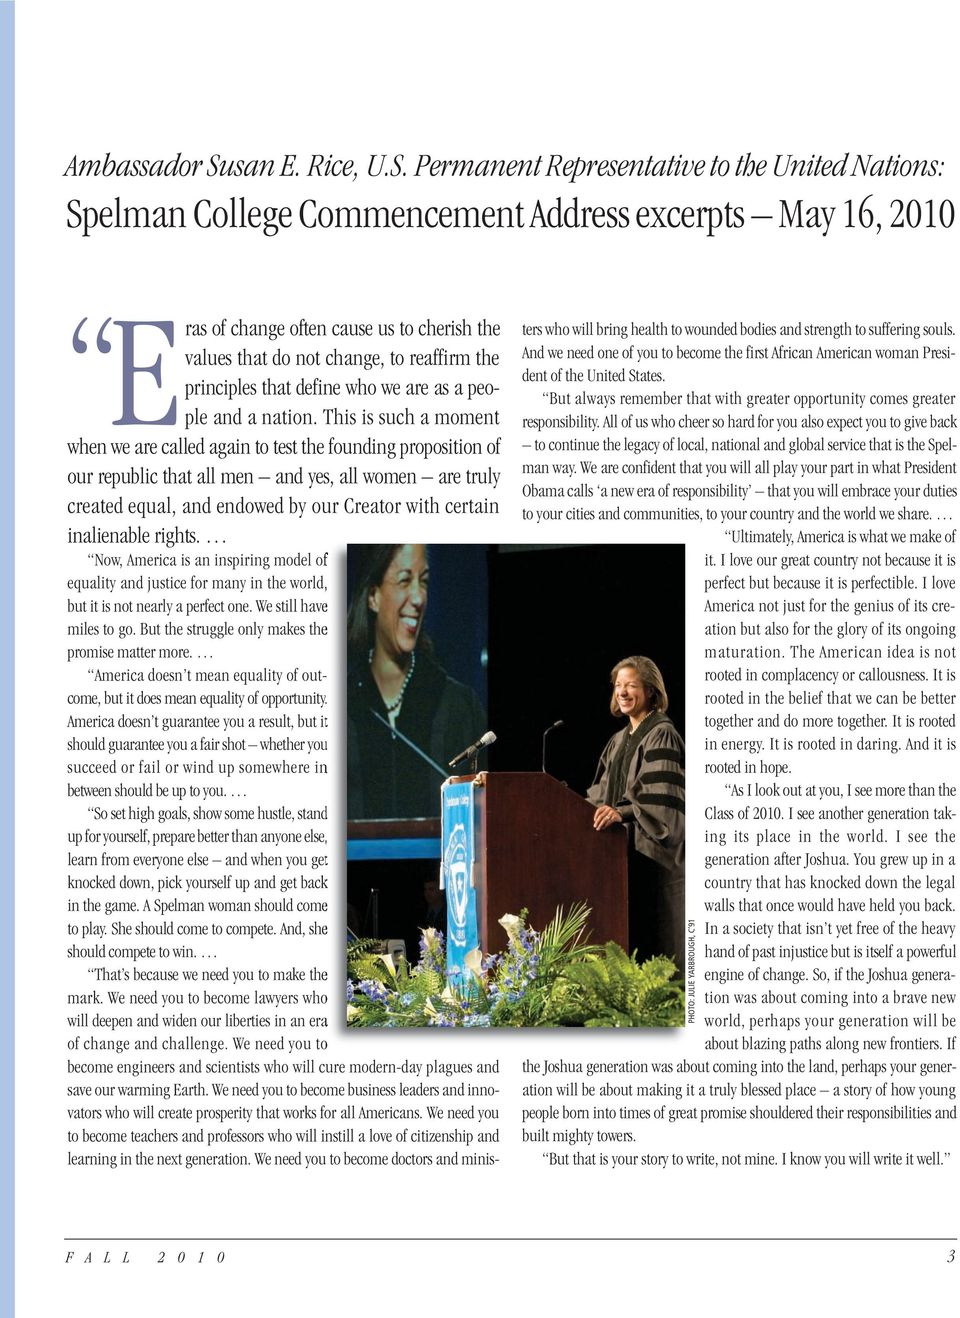 Permanent Representative to the United Nations: Spelman College Commencement Address excerpts May 16, 2010 E ras of change often cause us to cherish the values that do not change, to reaffirm the